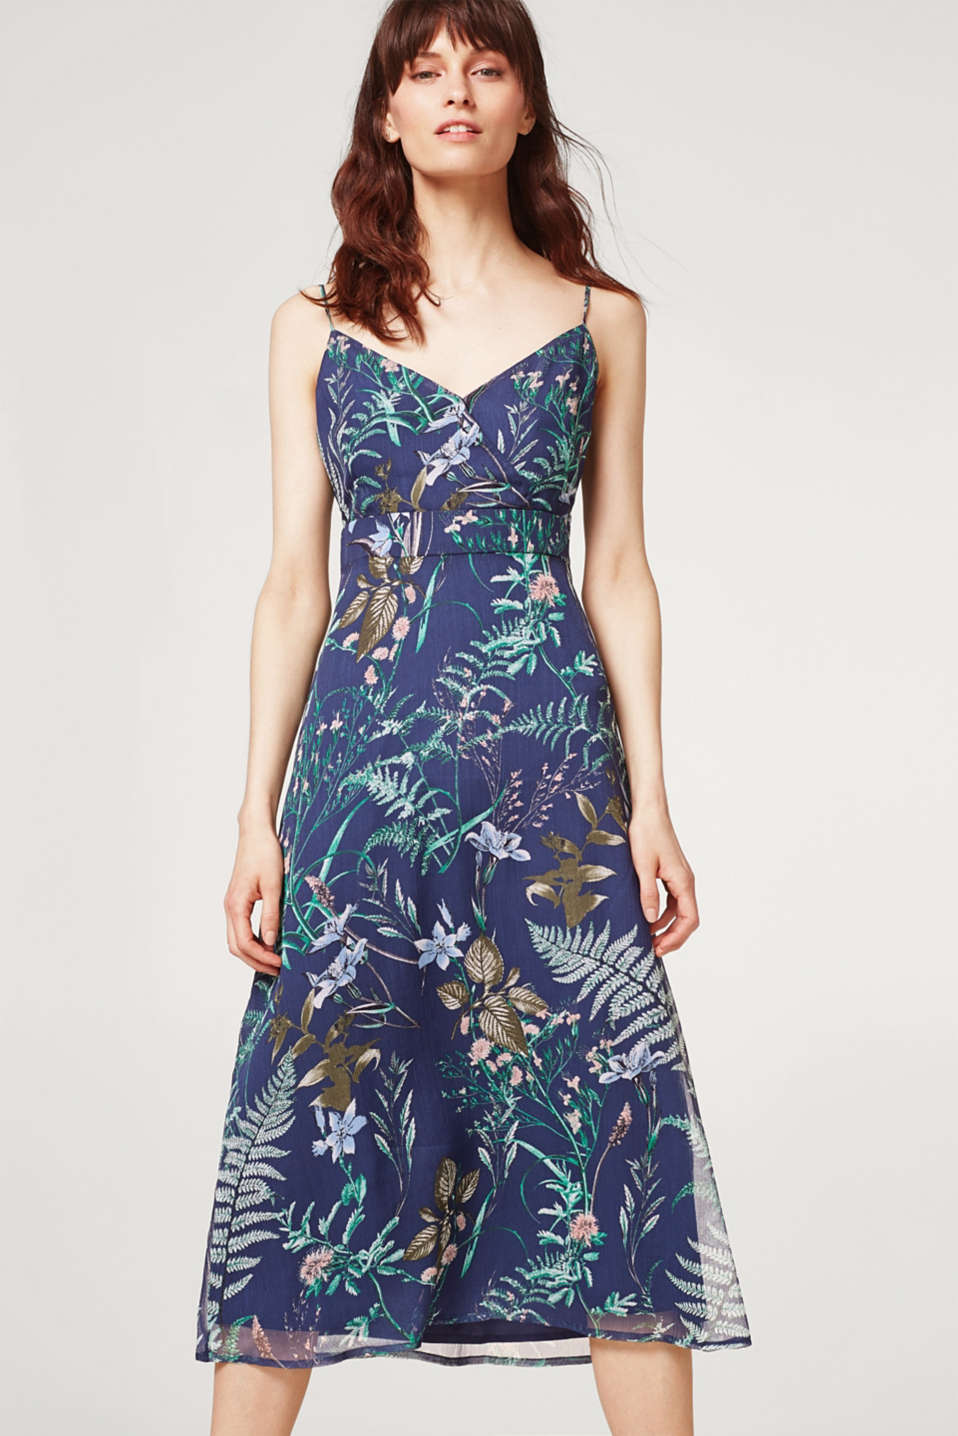 Esprit - Printed chiffon dress with spaghetti straps